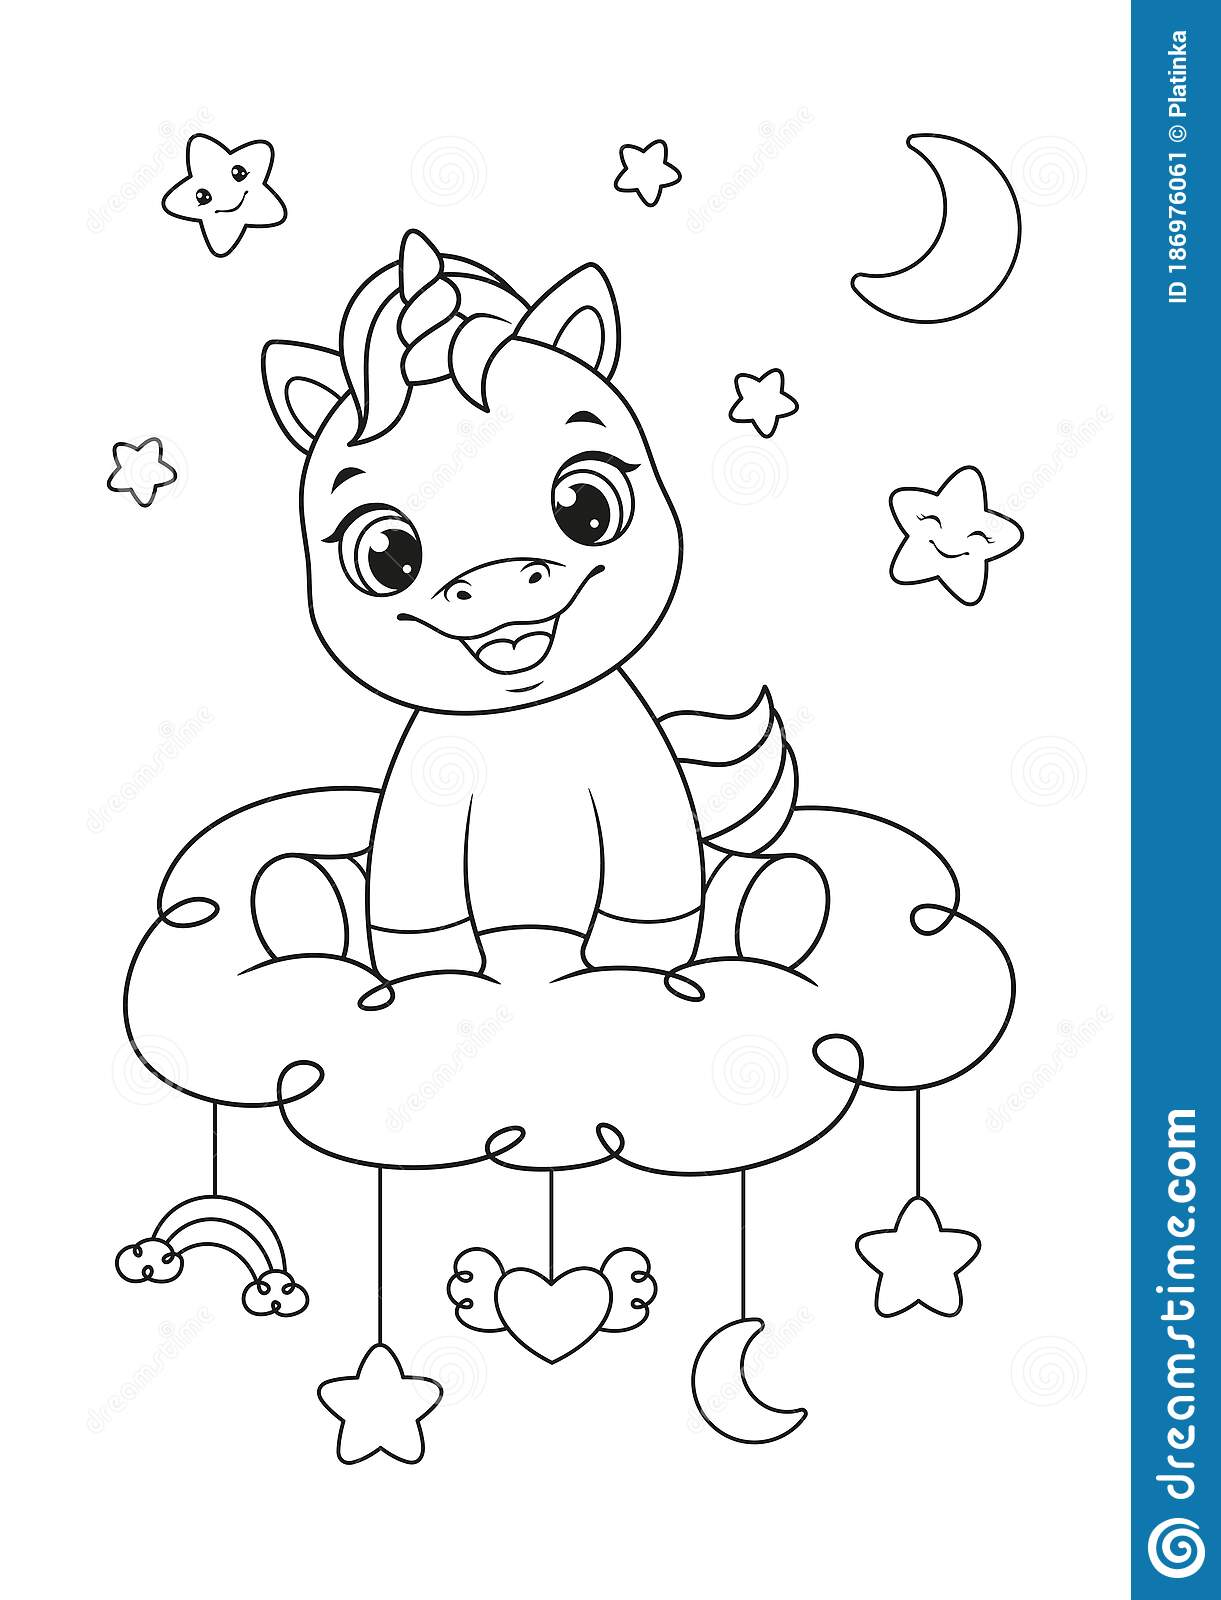 Happy Baby Unicorn Coloring Page Stock Vector Illustration Of Fantasy Baby 186976061